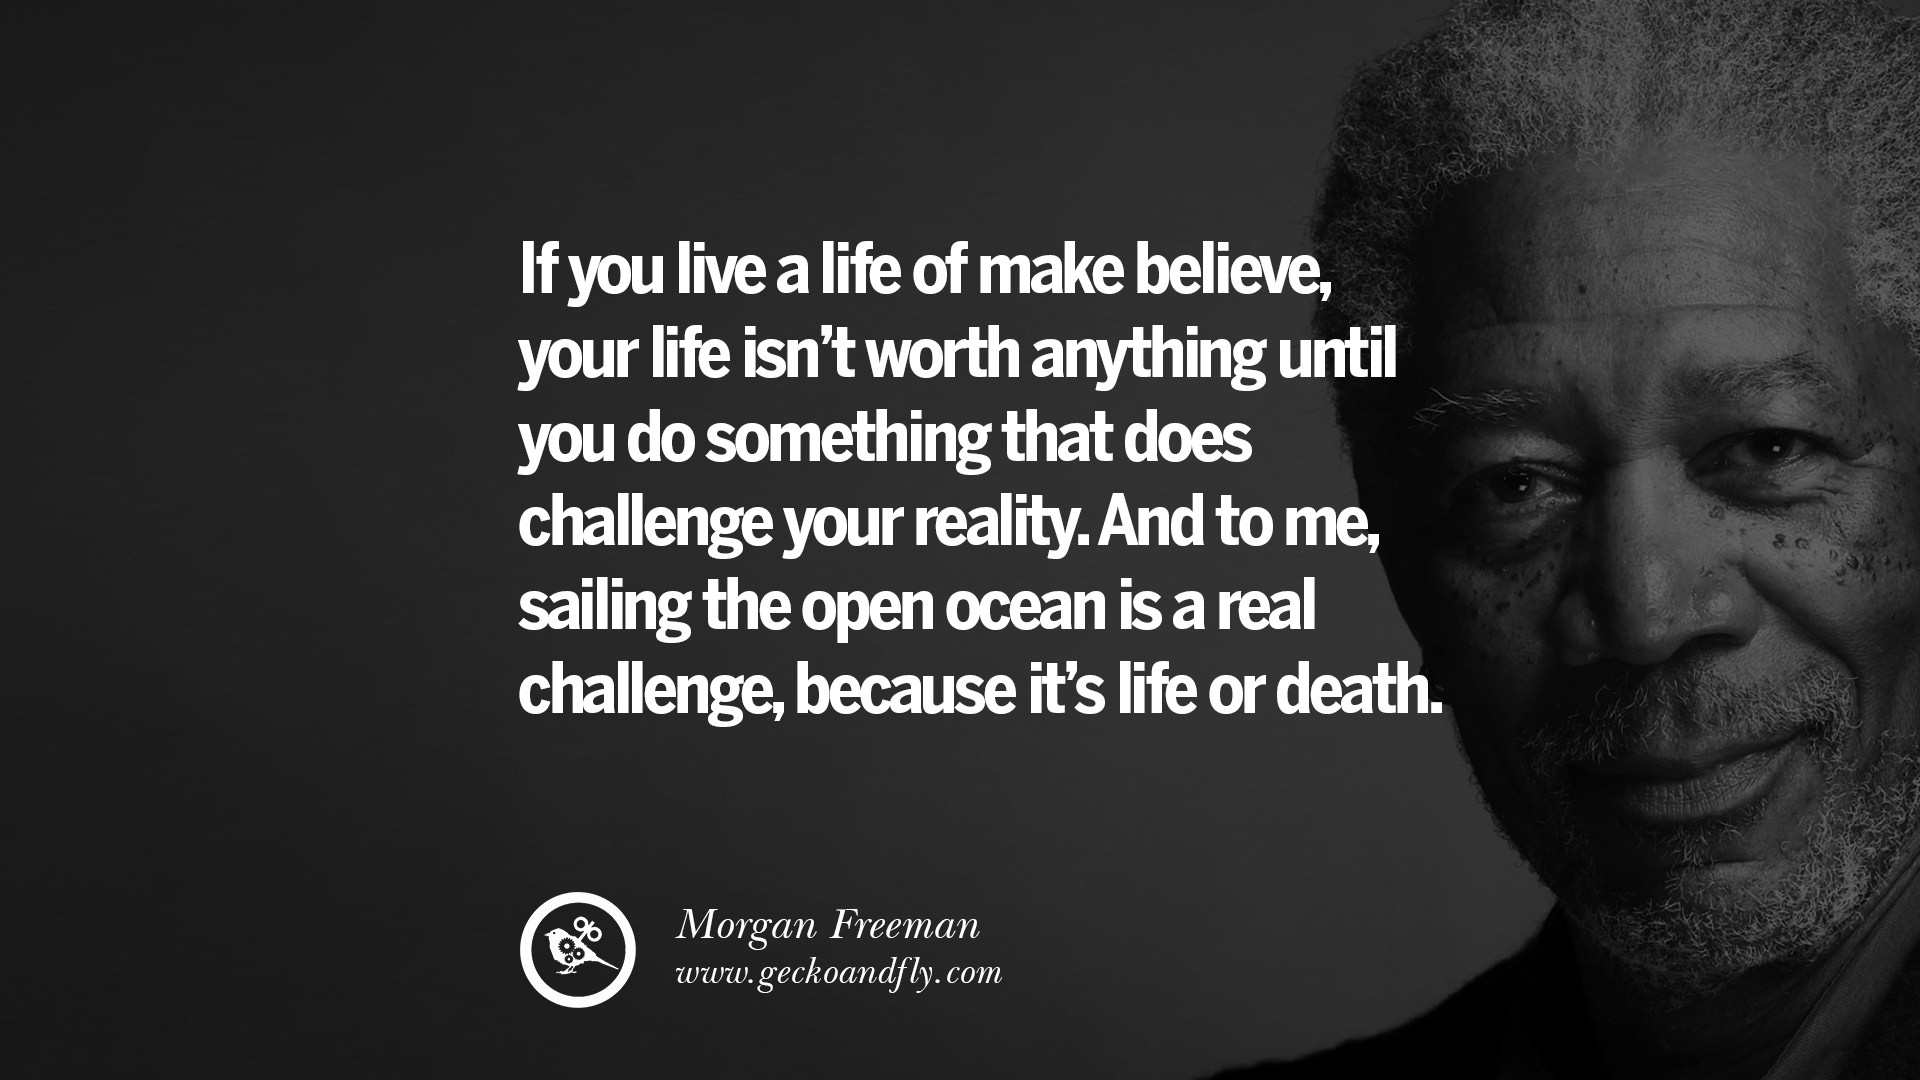 Profound Quotes About Life 10 Morgan Freeman Quotes On Life Death Success And Struggle